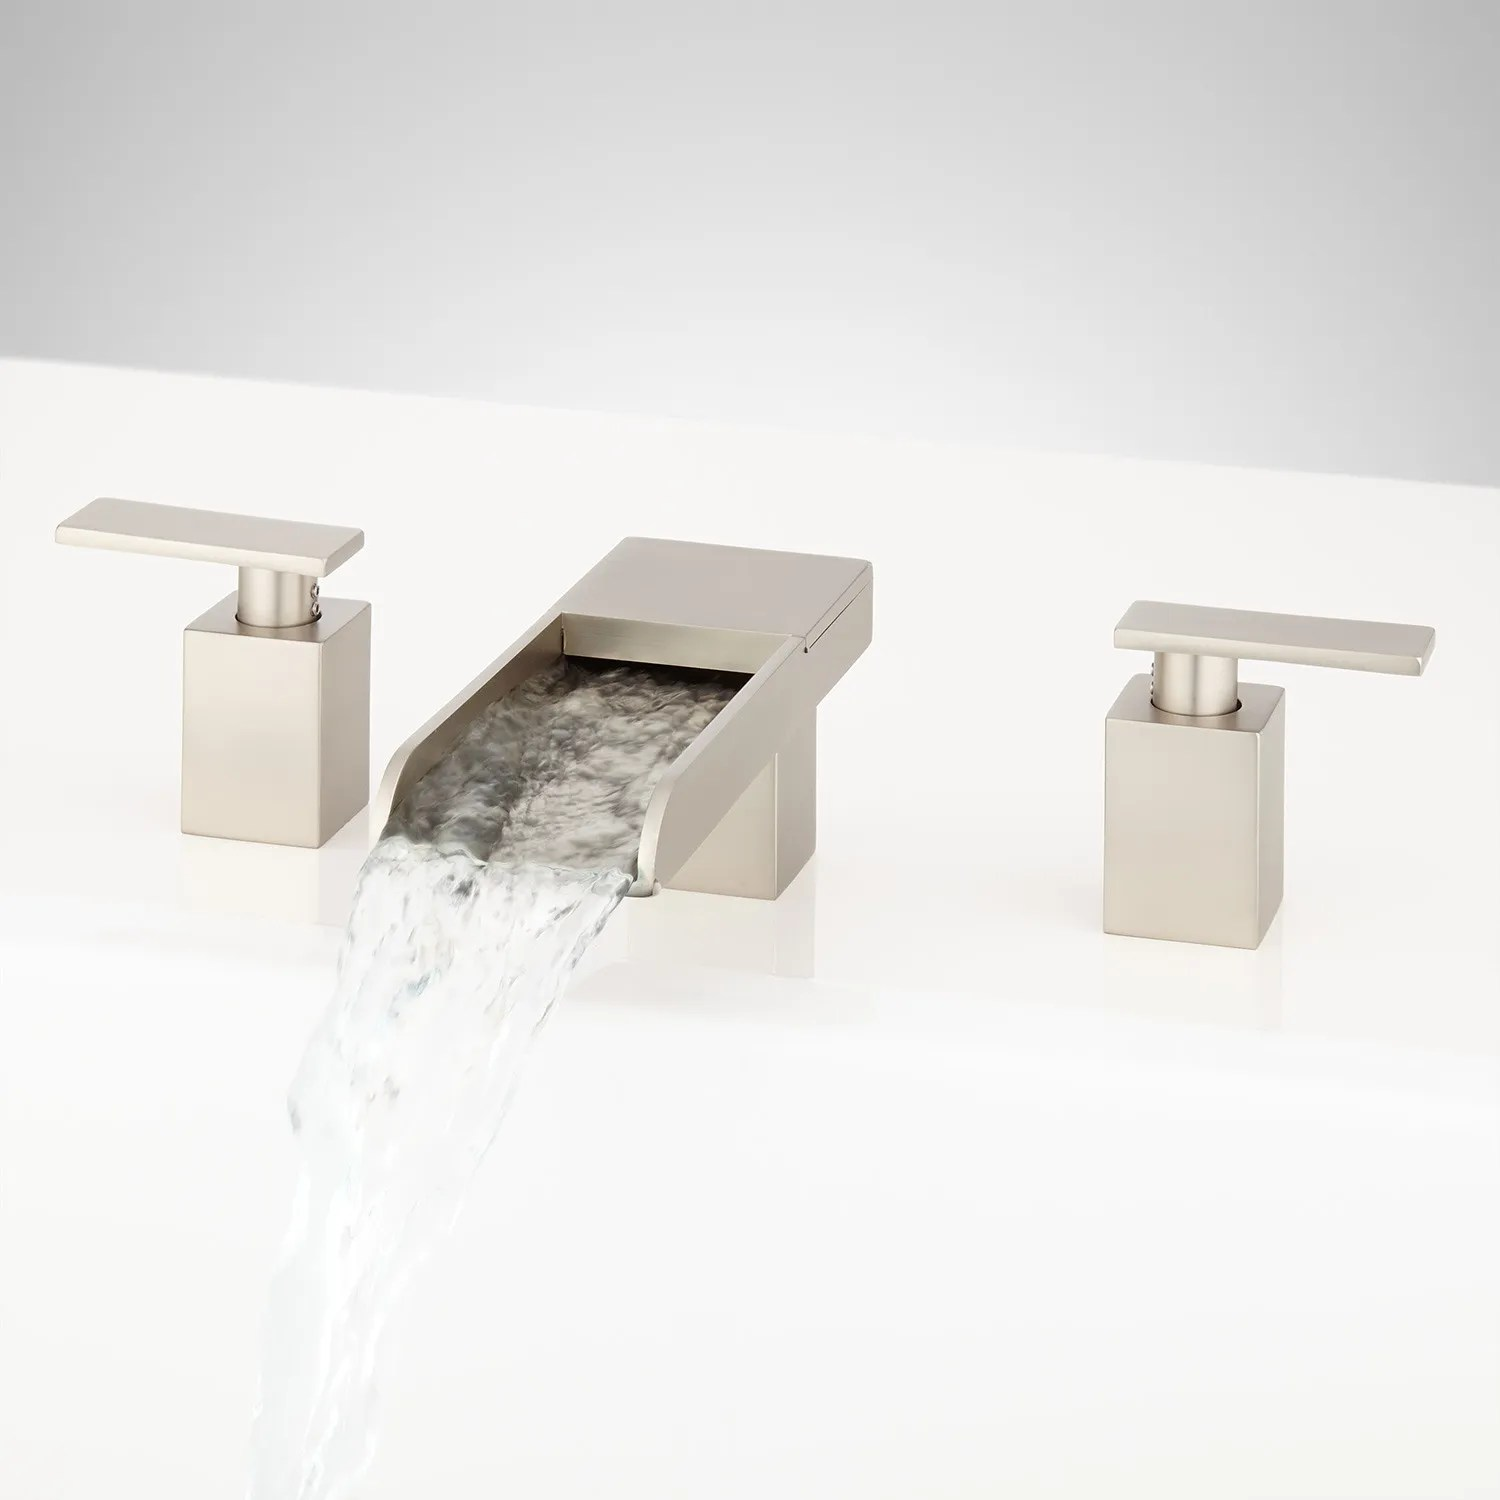 Willis Waterfall Roman Tub Faucet Bathroom